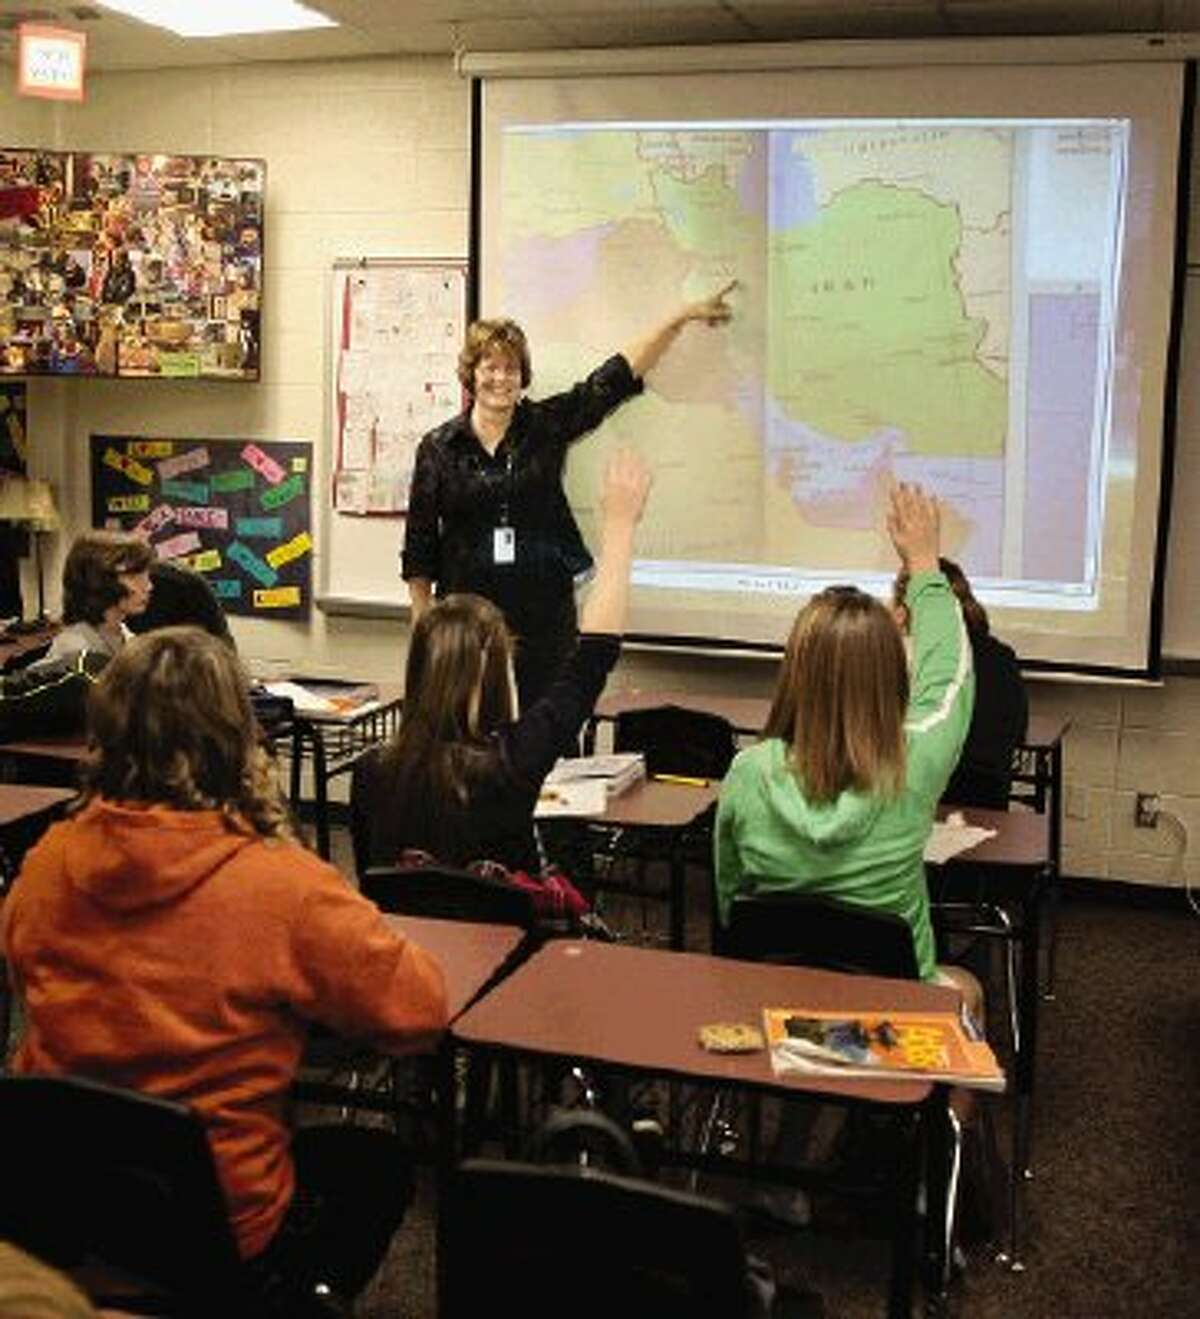 Students in Chris Corson's social studies class are learning about the Middle East by participating in a program paying tribute to U.S. servicemen and women serving in the region.